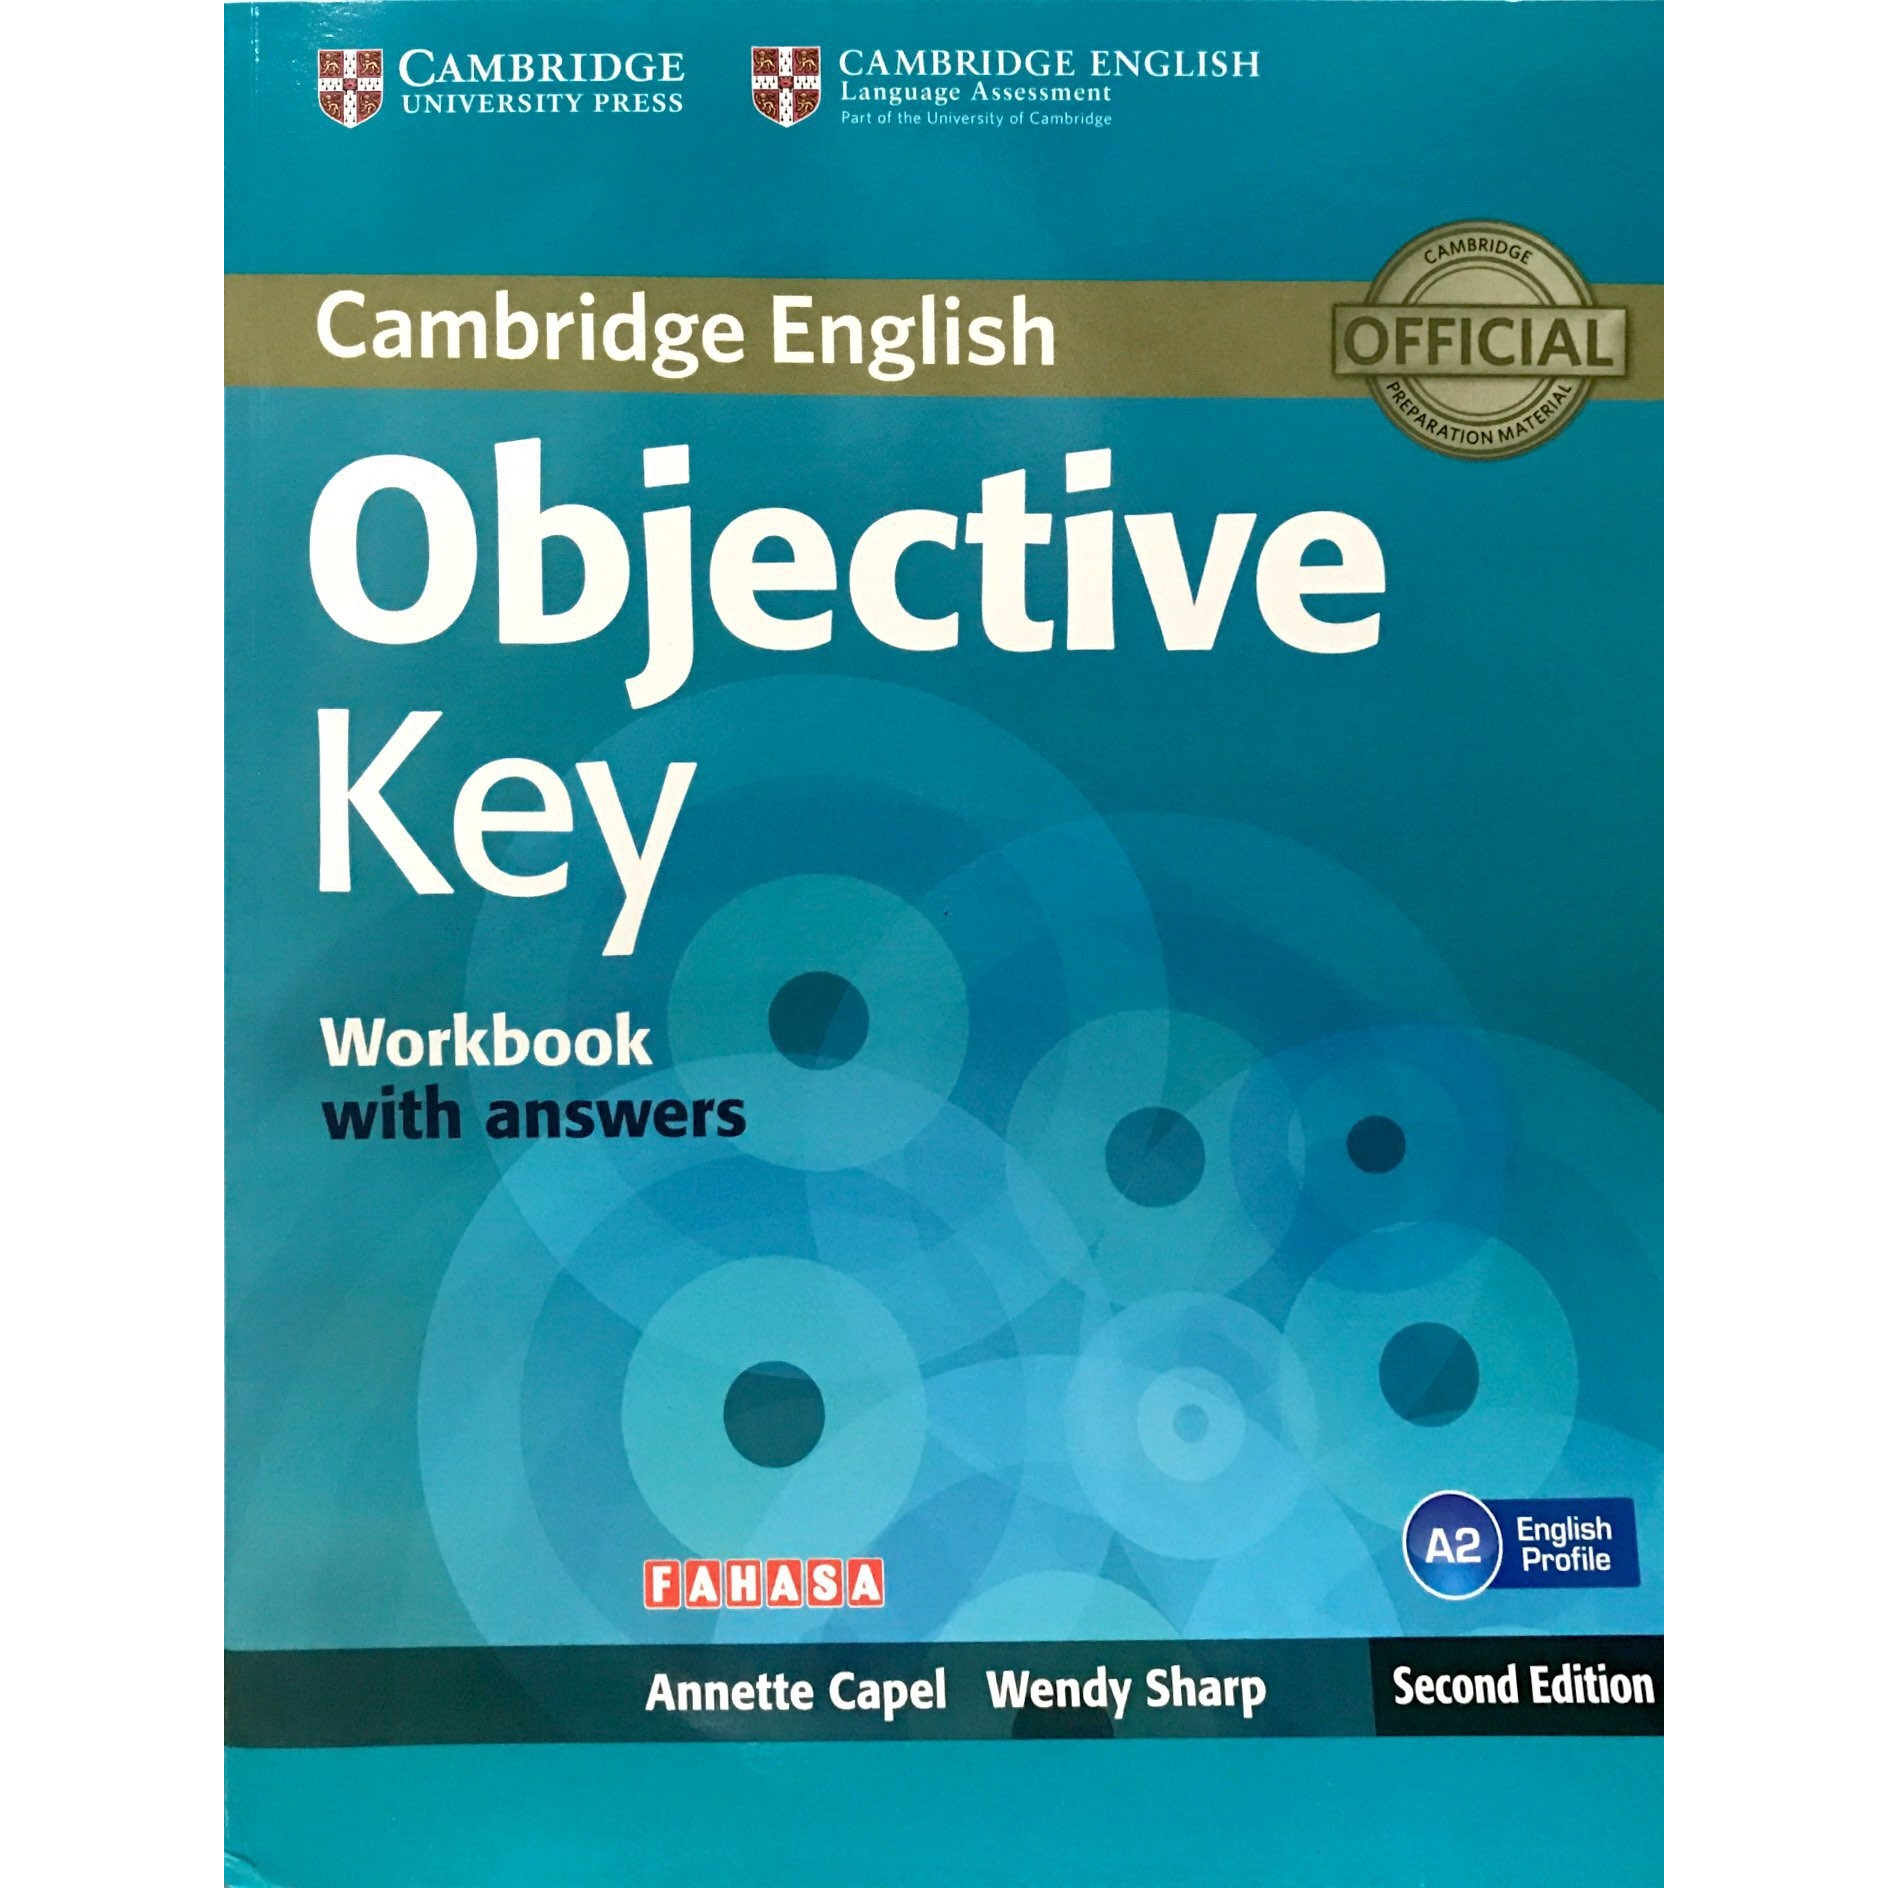 Objective Key Workbook With Answers Vietnam Edition 2